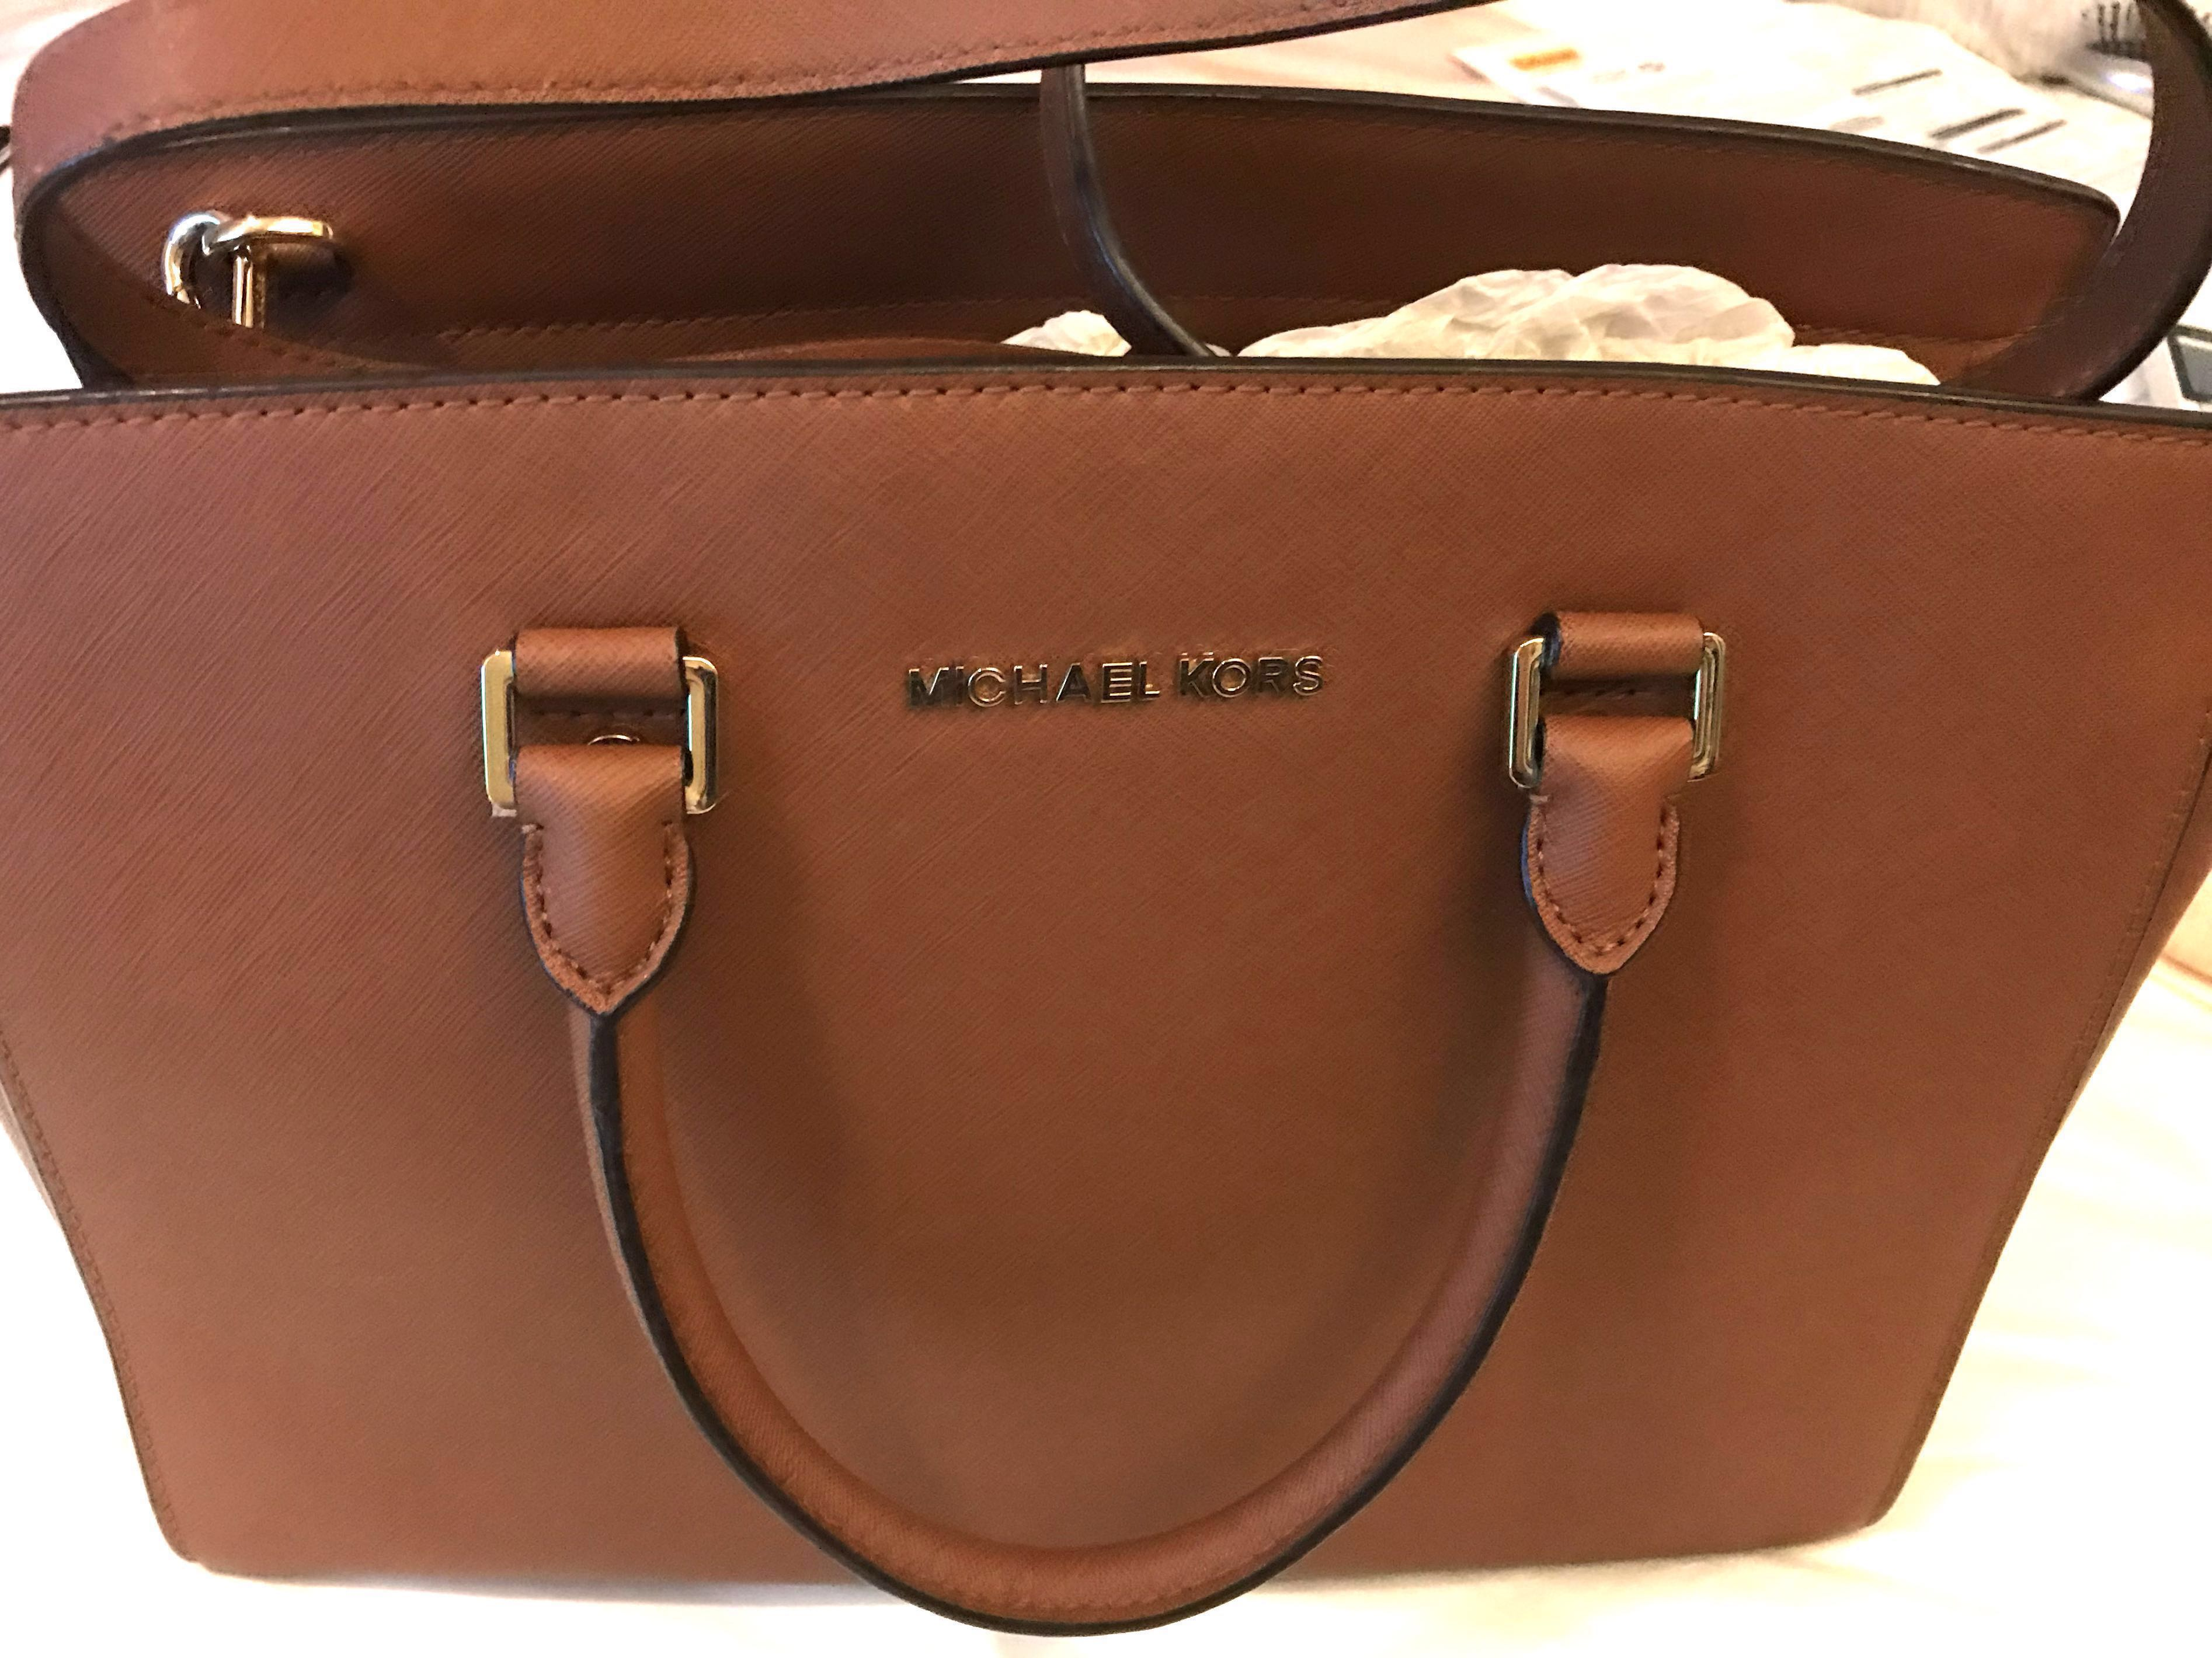 fc174fd84753b Authentic Michael Kors Large Selma Saffiano Leather bag in Luggage ...